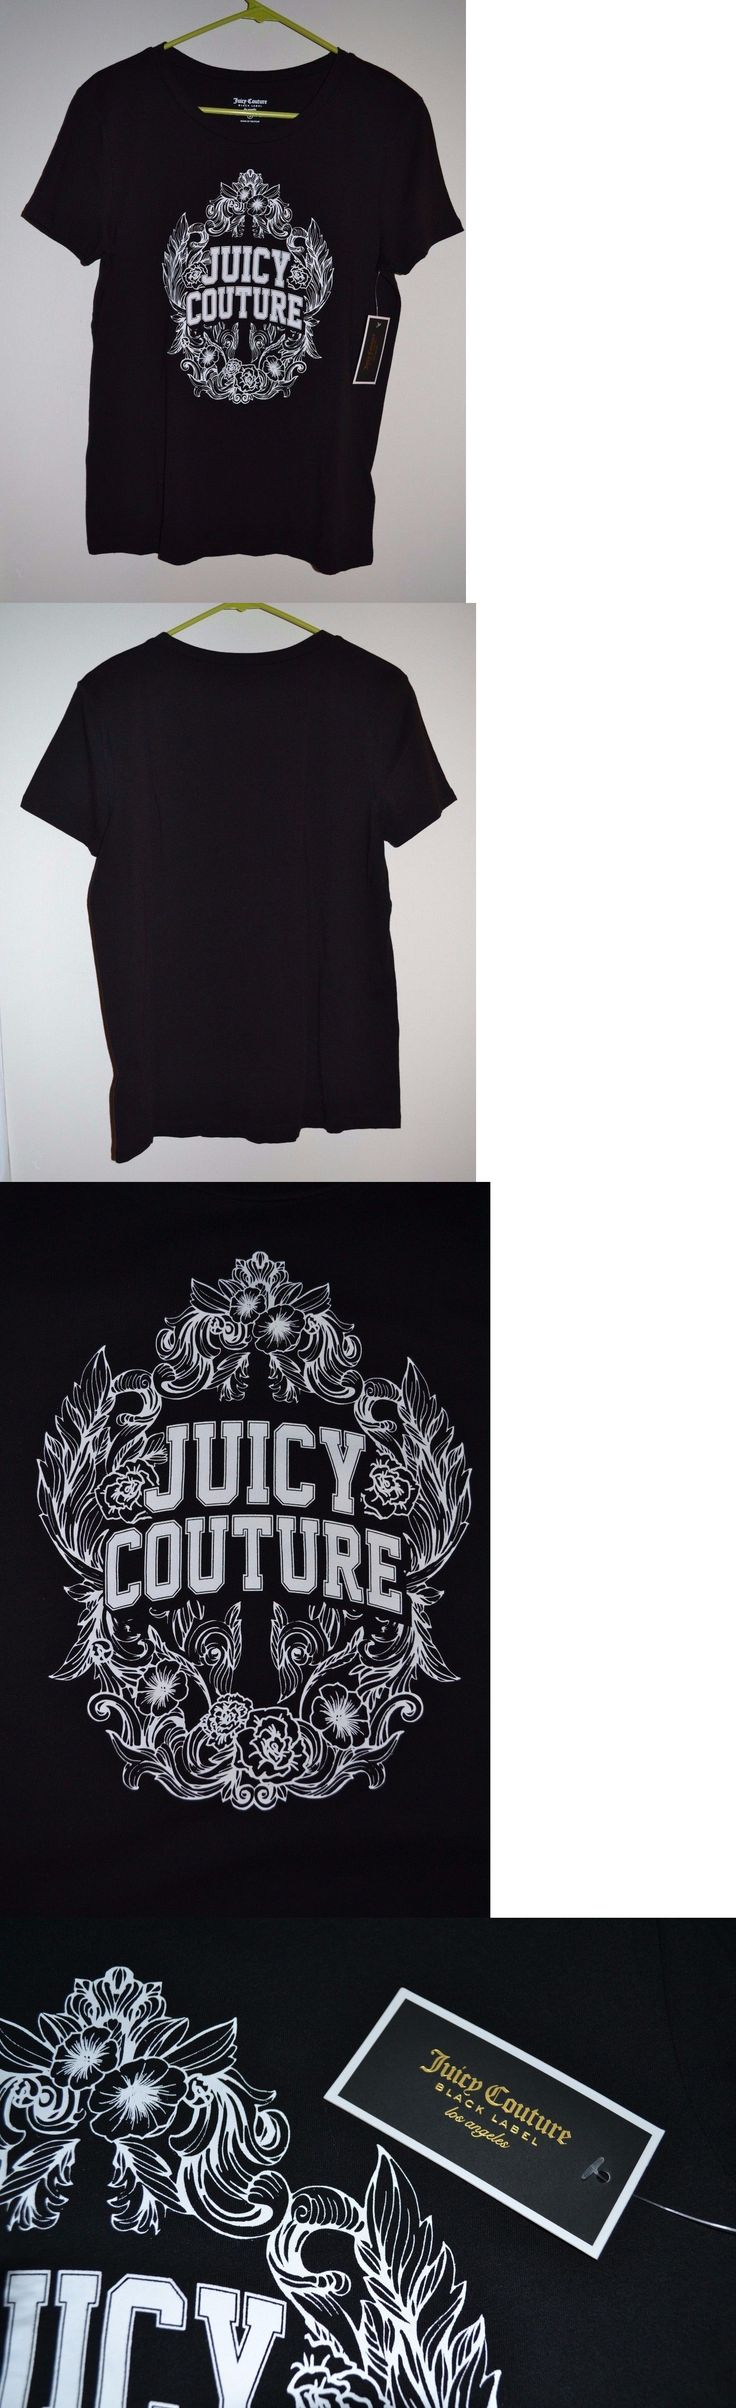 T-Shirts 63869: Nwt Women S Juicy Couture Relaxed Tee T Shirt Floral Frame Black Size Small -> BUY IT NOW ONLY: $44.5 on eBay!